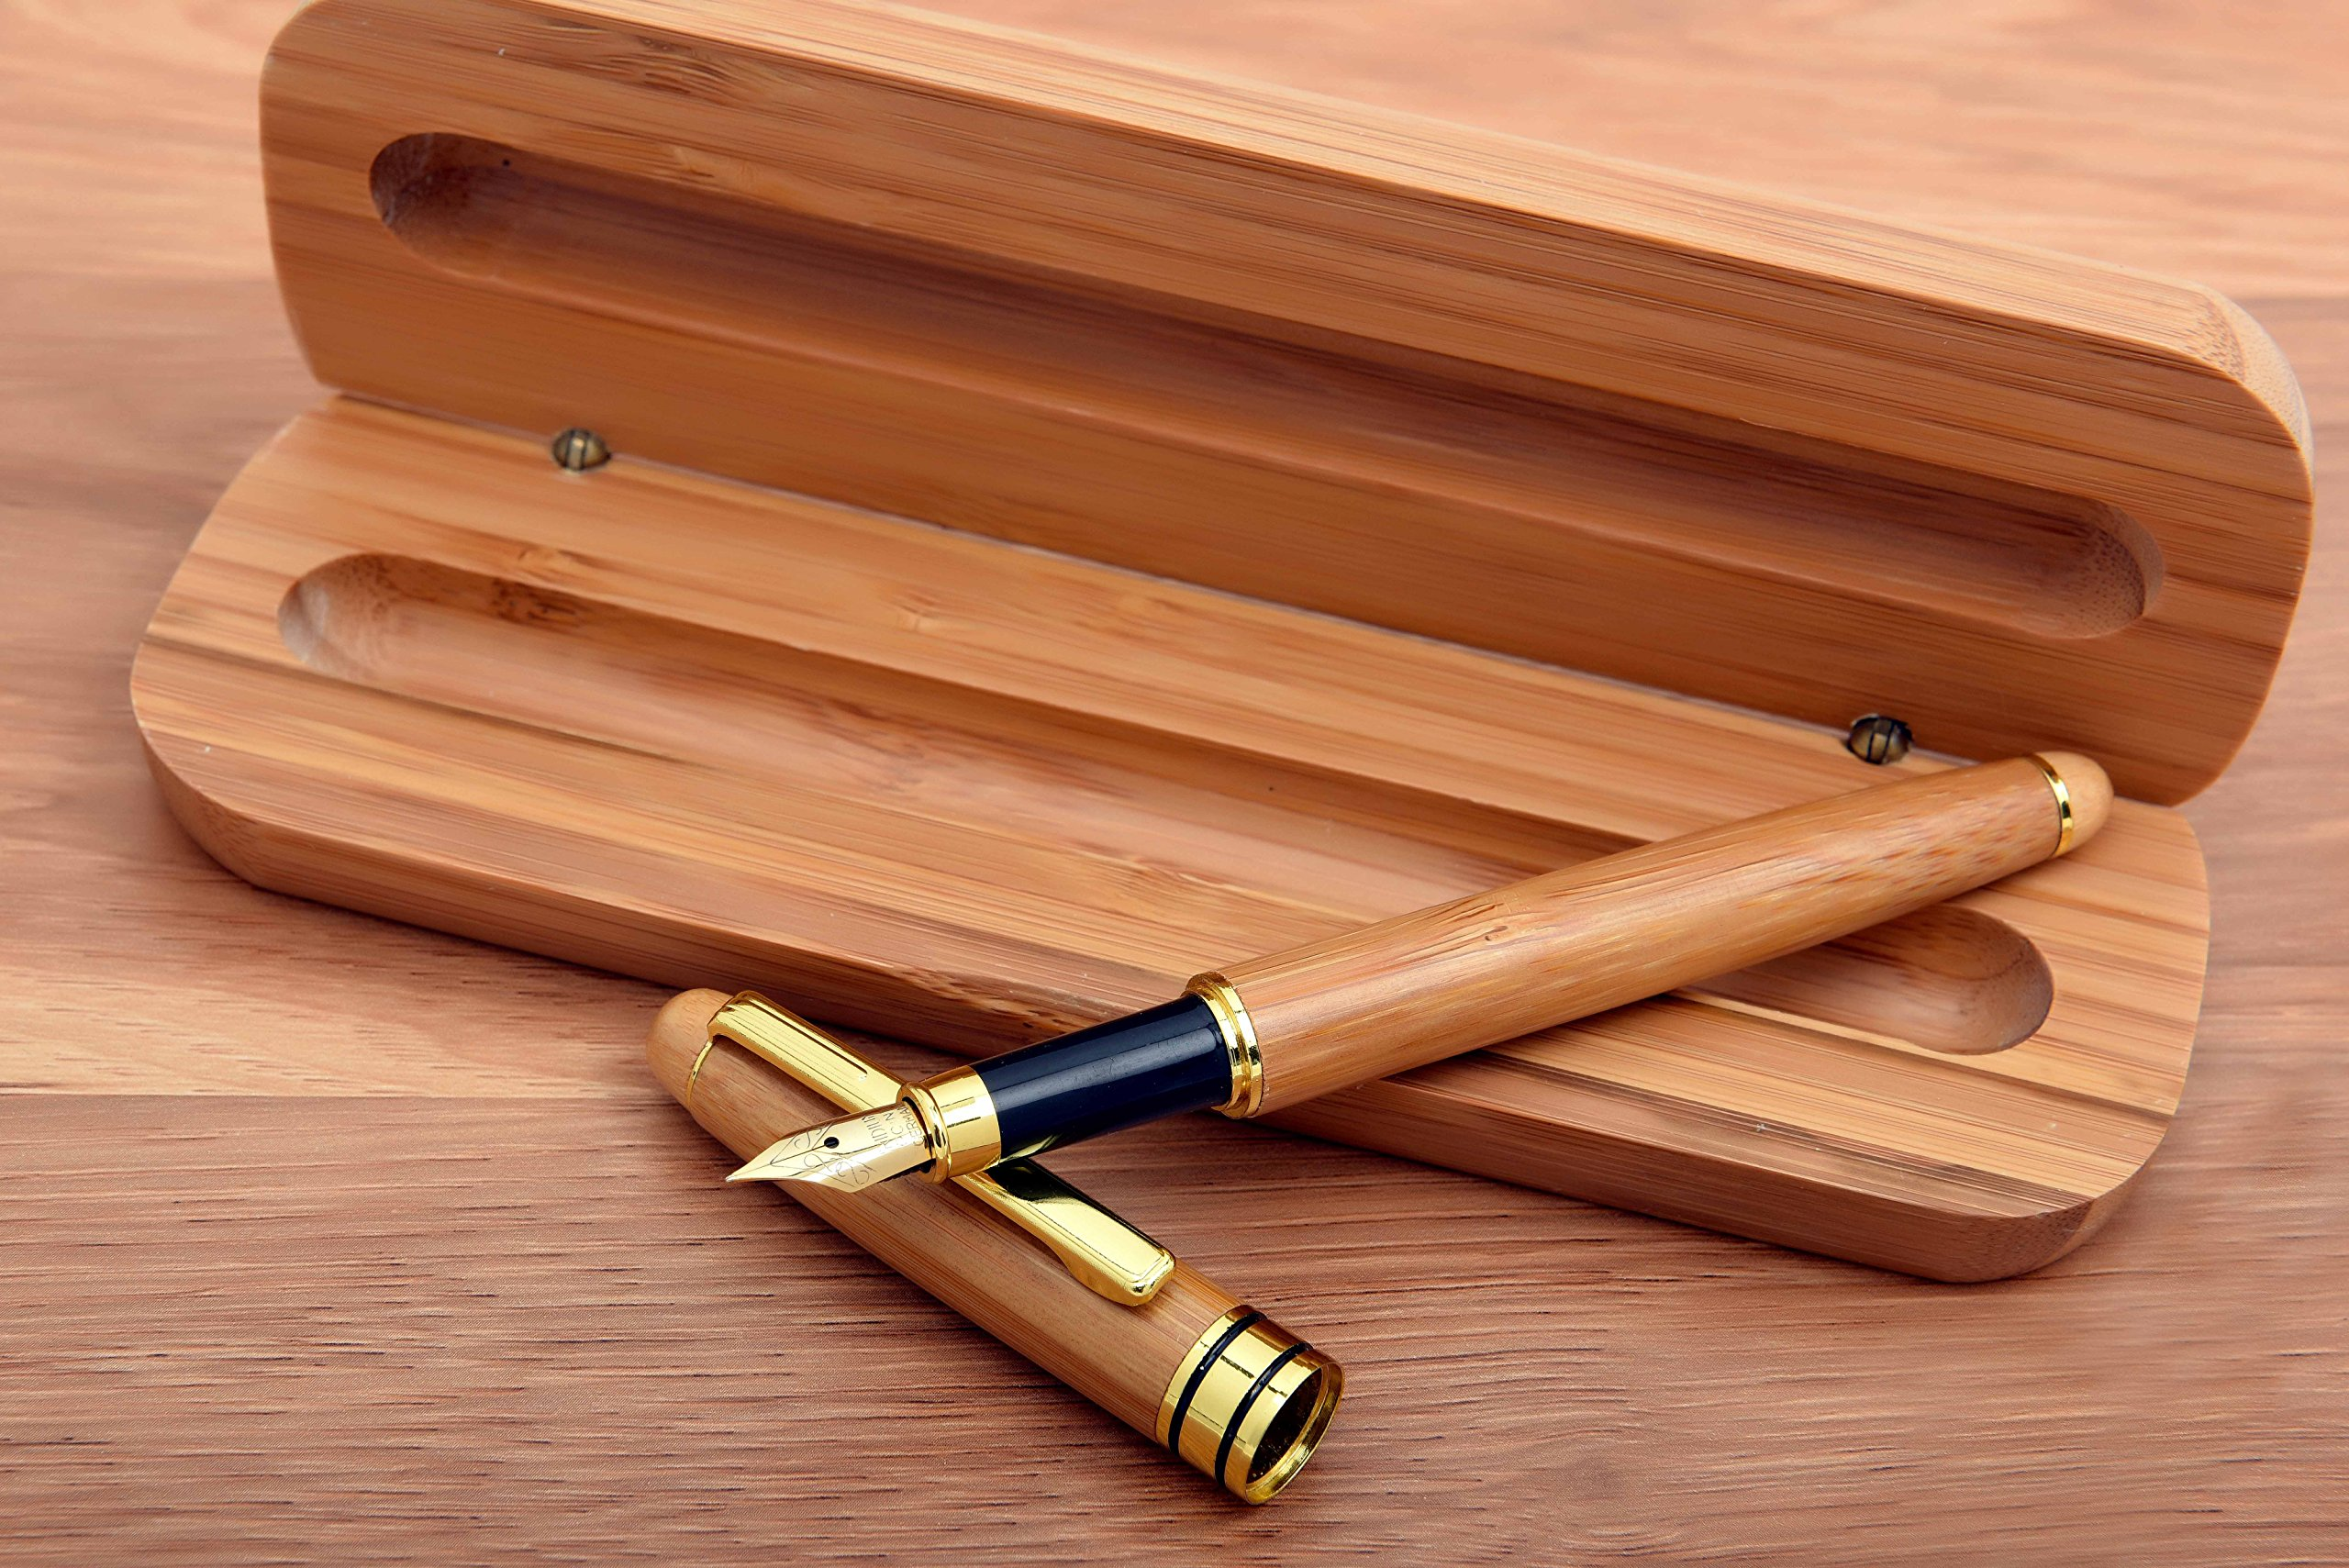 Fountain Pen With Case | Calligraphy Fountain Pen | Natural Handcrafted Fountain Pen With Bonus Wood Case & Ink Refill Converter (Bamboo - Gold NIB - Matching Woodcase)